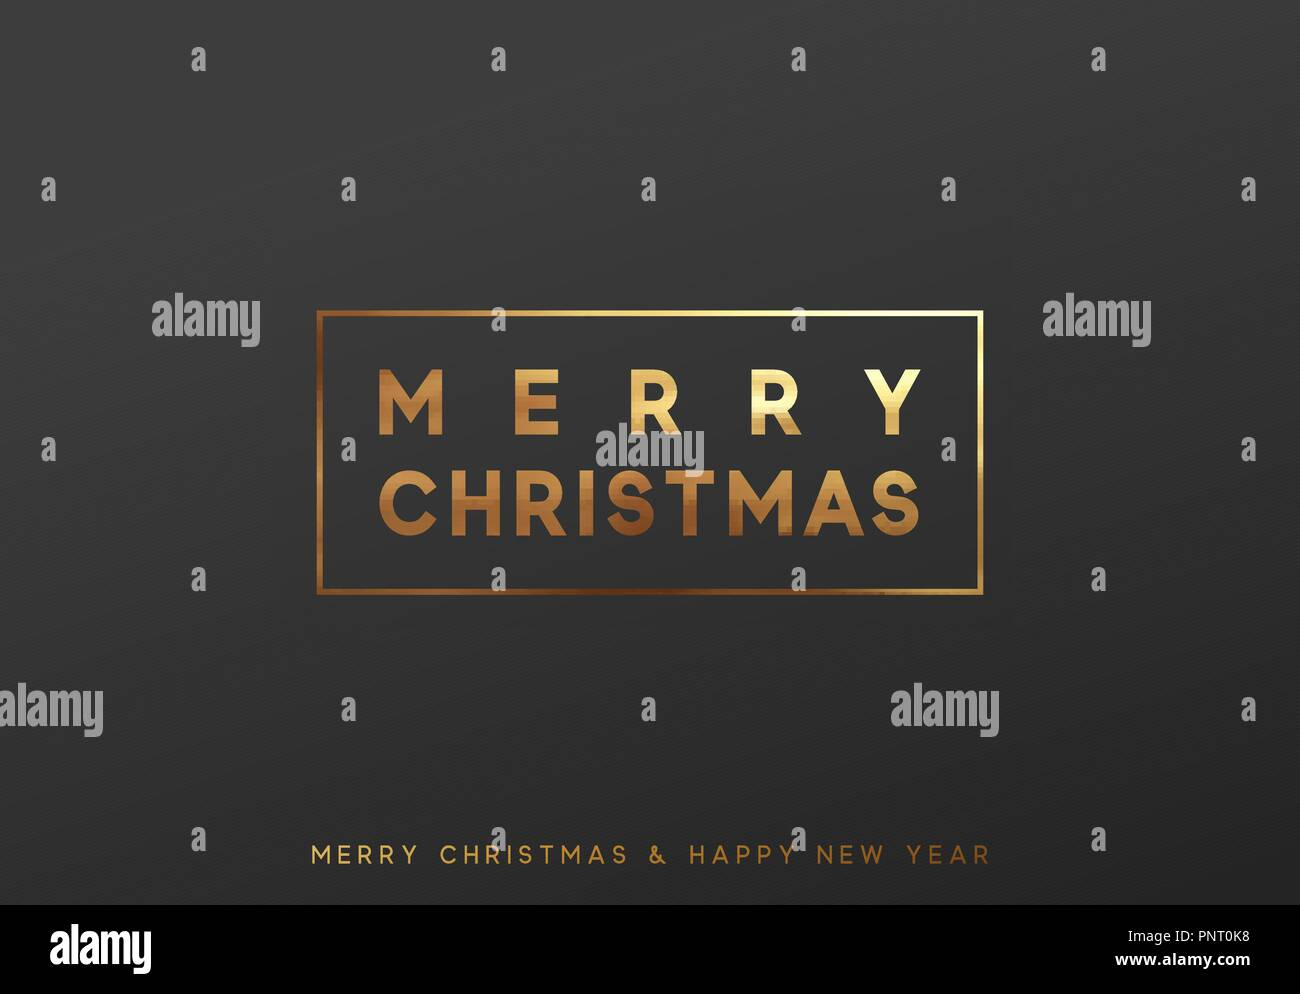 Merry Christmas gold lettering in a frame background. - Stock Image